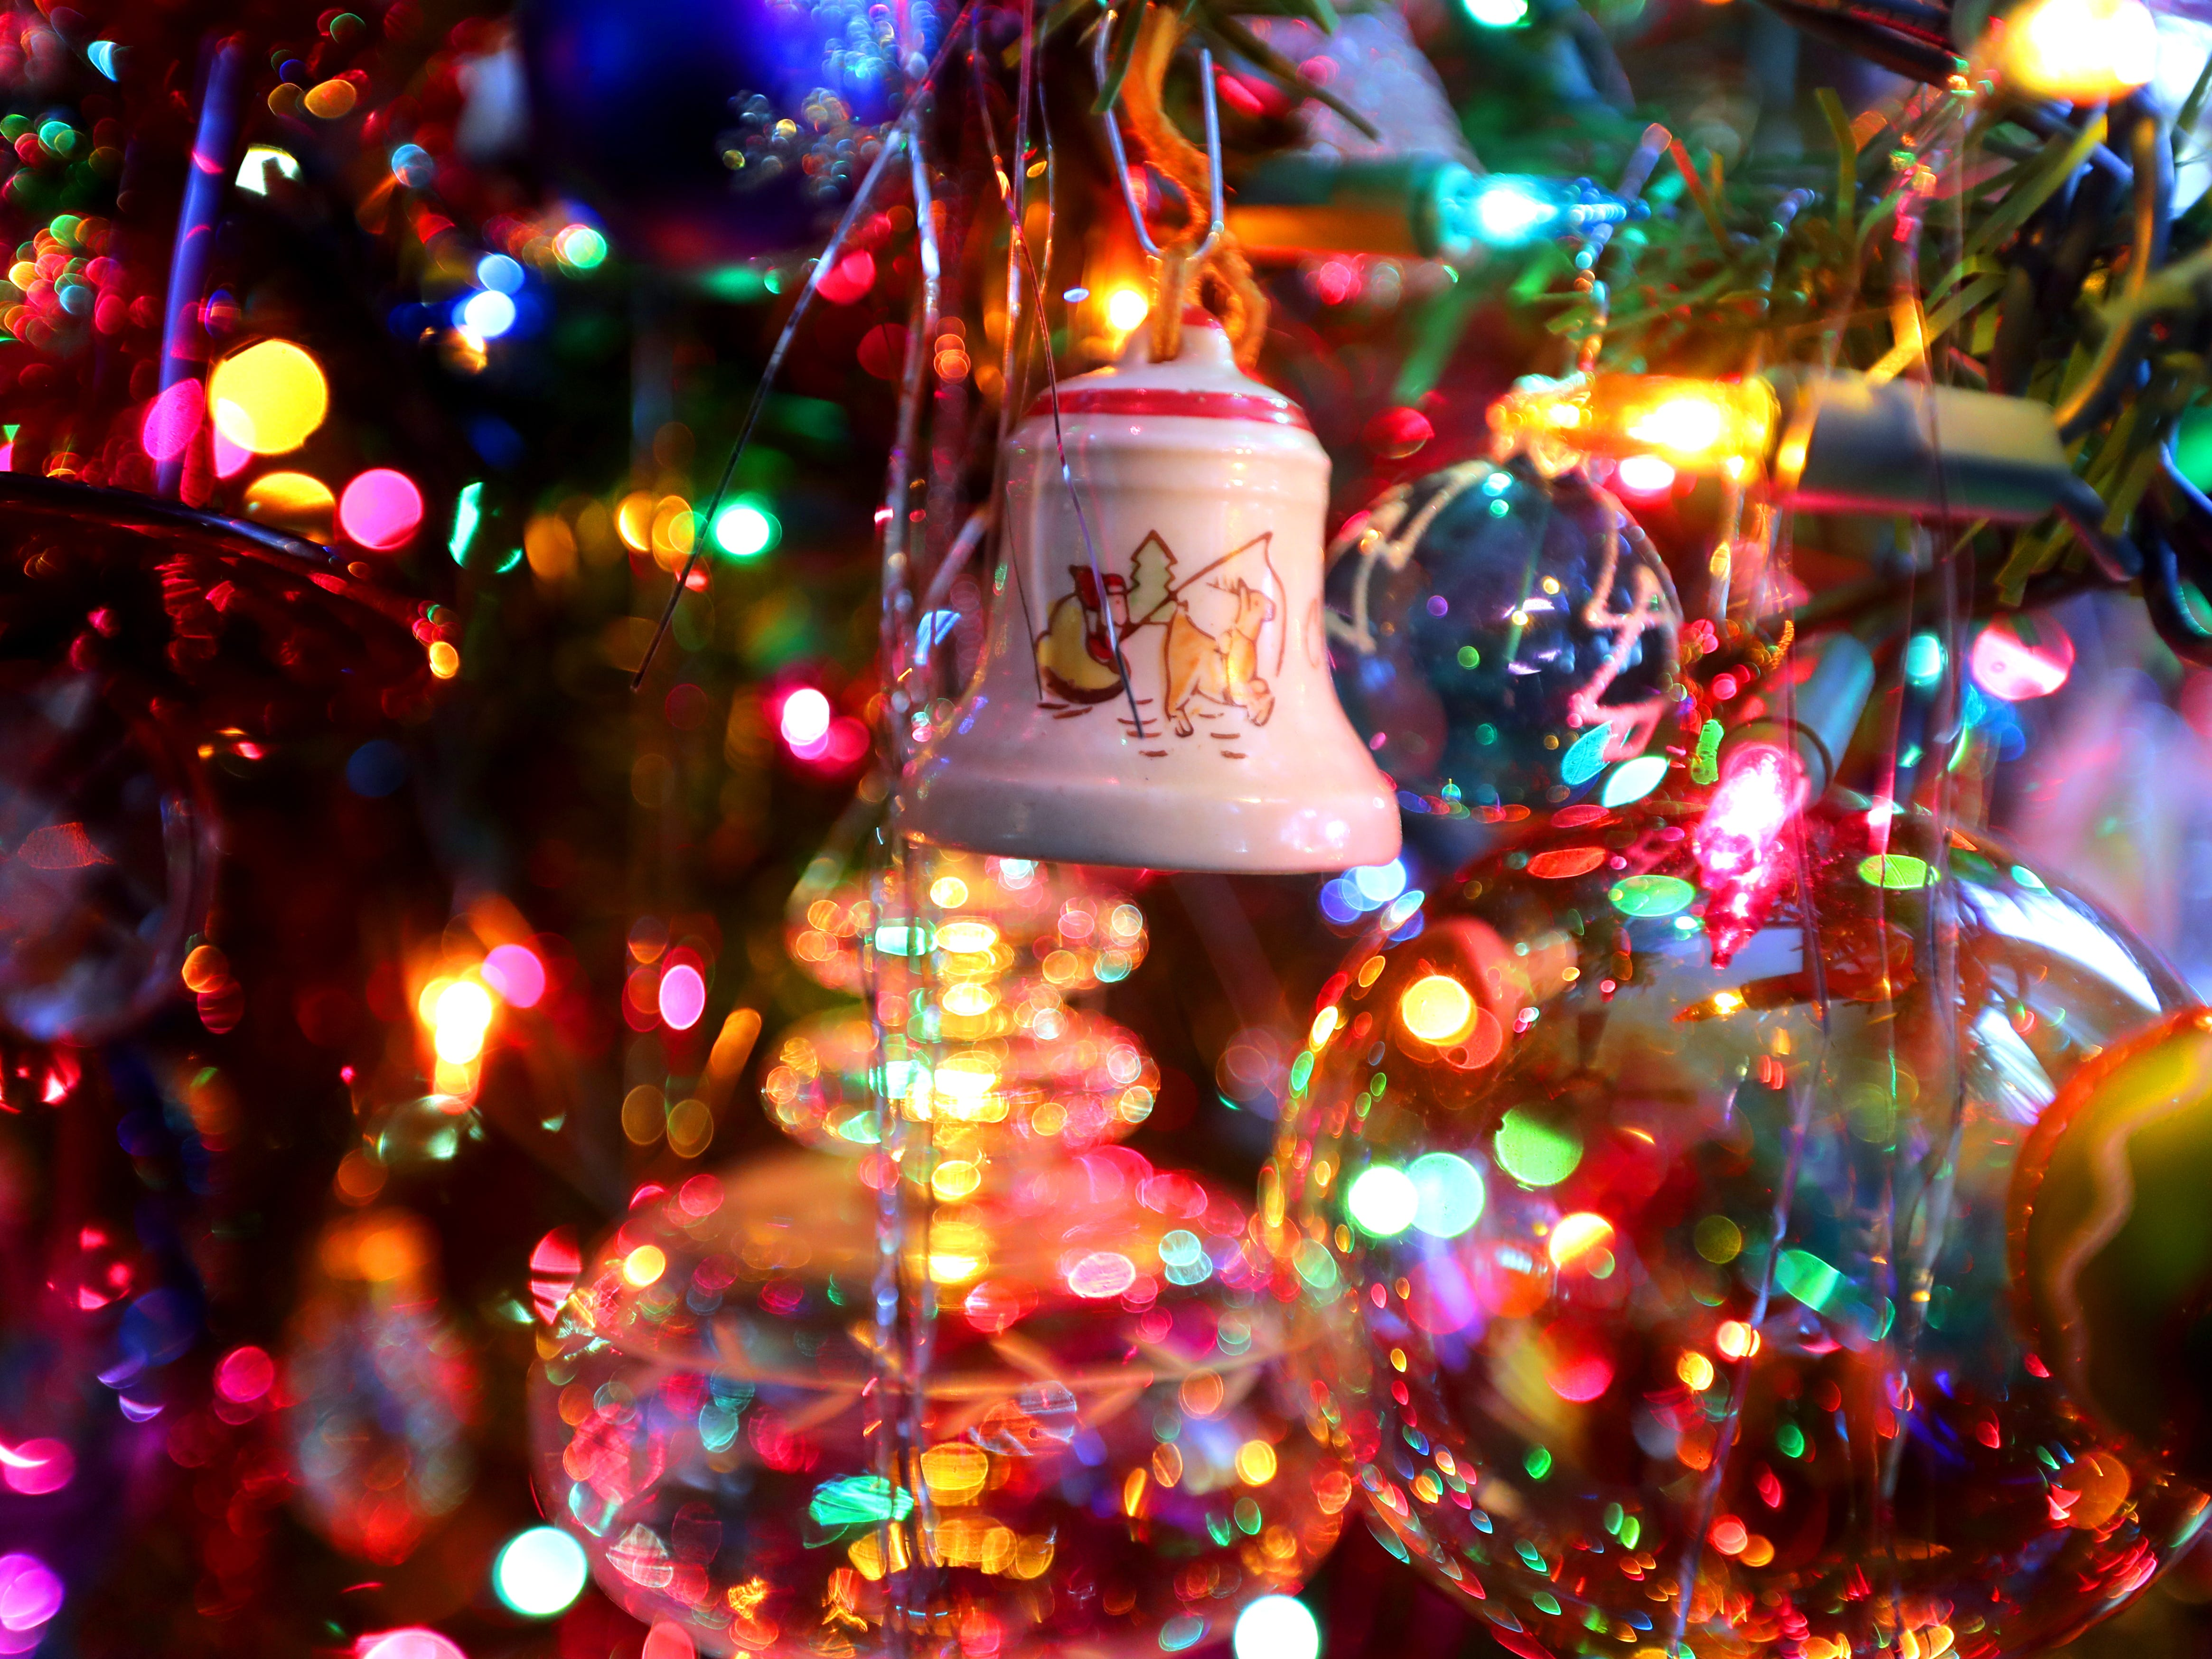 An antique bell, handed down from Kim Harrison's grandmother, is one of her favorite ornaments.